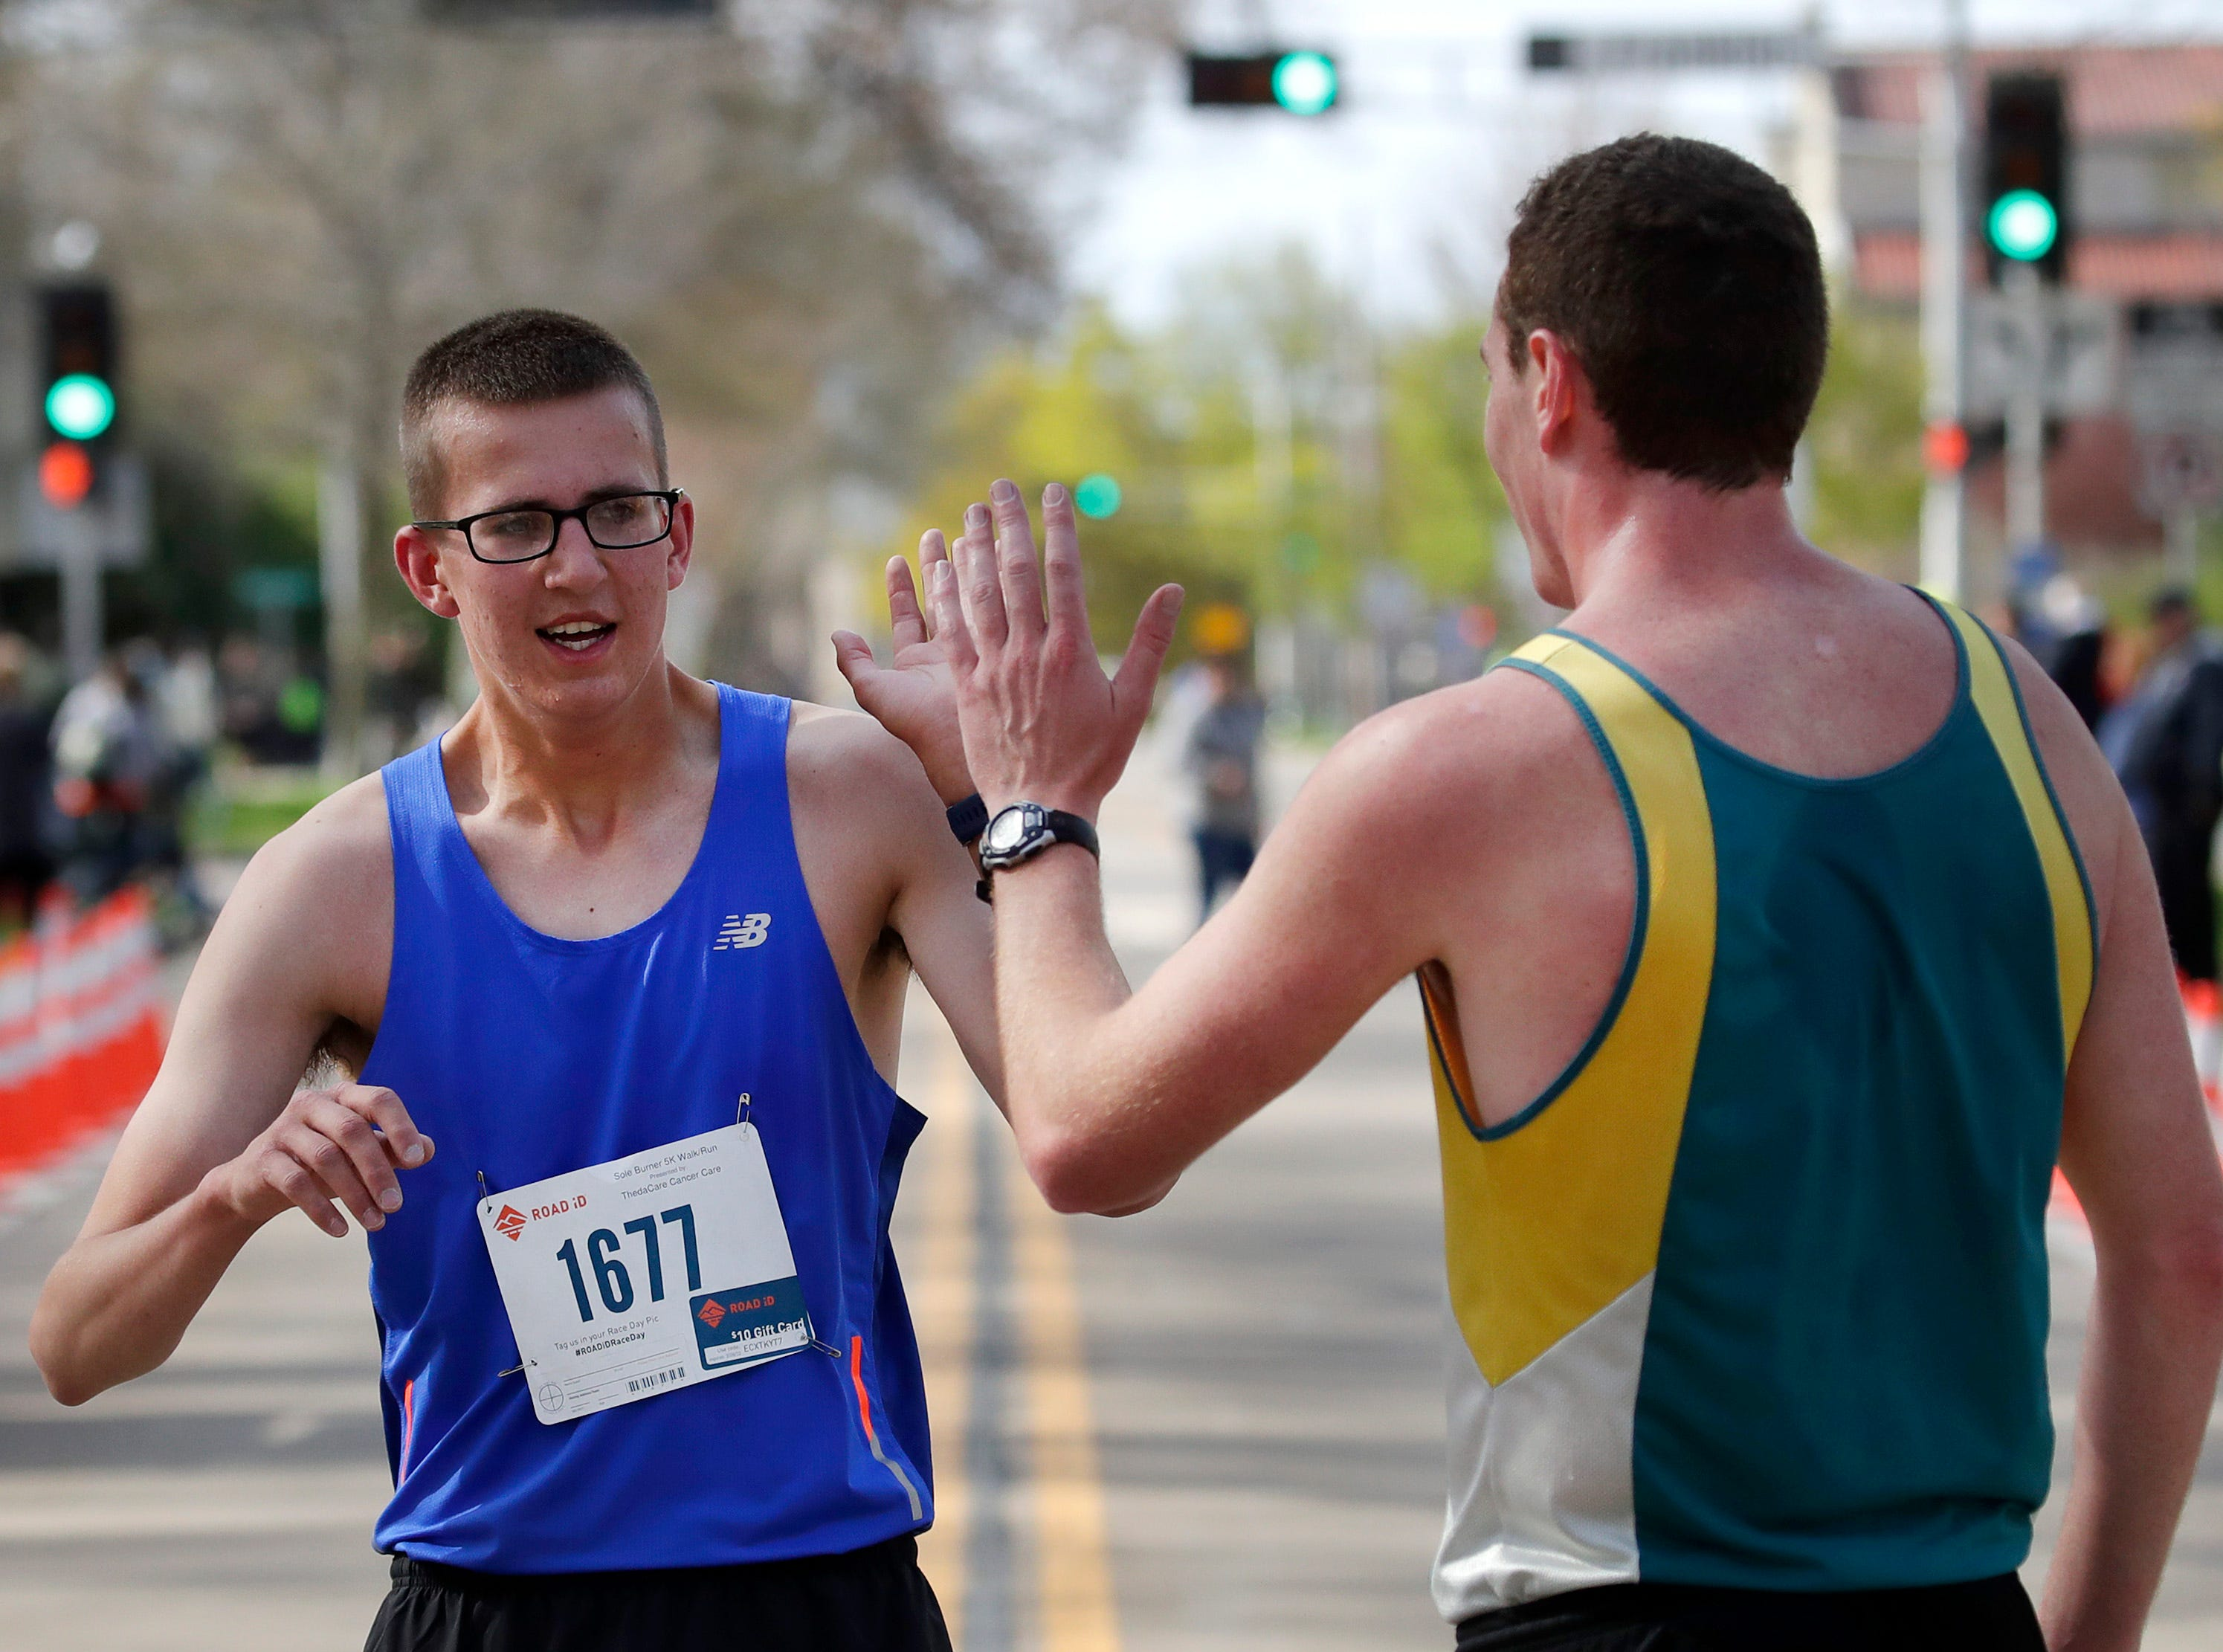 Duncan Tjader high fives Logan Jadin after crossing the finish line during the Sole Burner 5K Walk-Run Saturday, May 11, 2019, in Appleton, Wis. Danny Damiani/USA TODAY NETWORK-Wisconsin